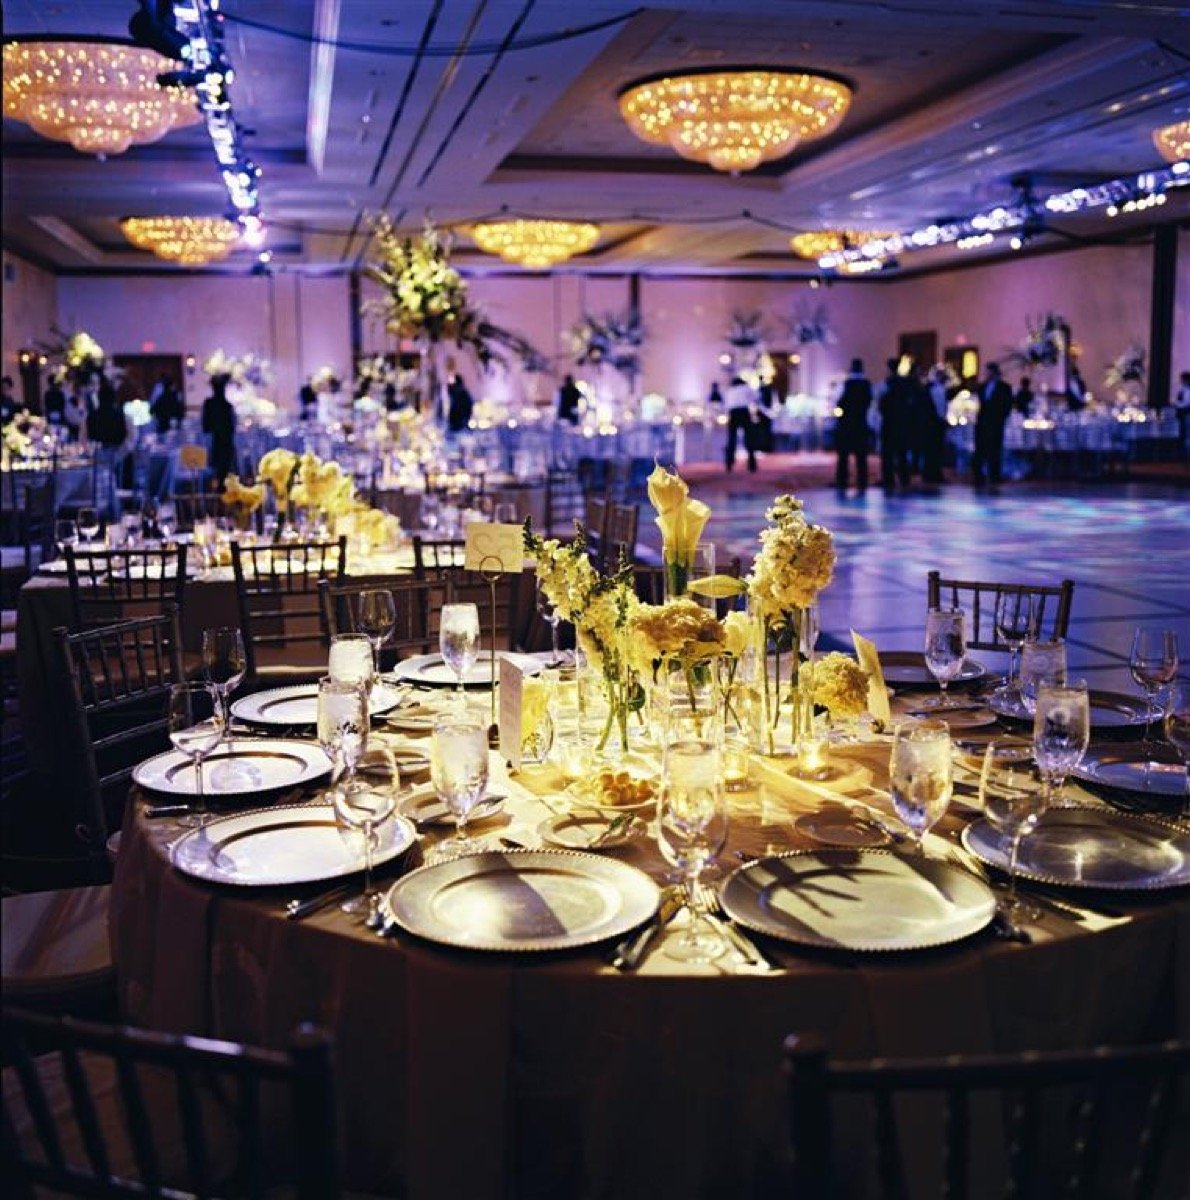 A golden centerpiece at the La Cantera Resort and Spa banquet.